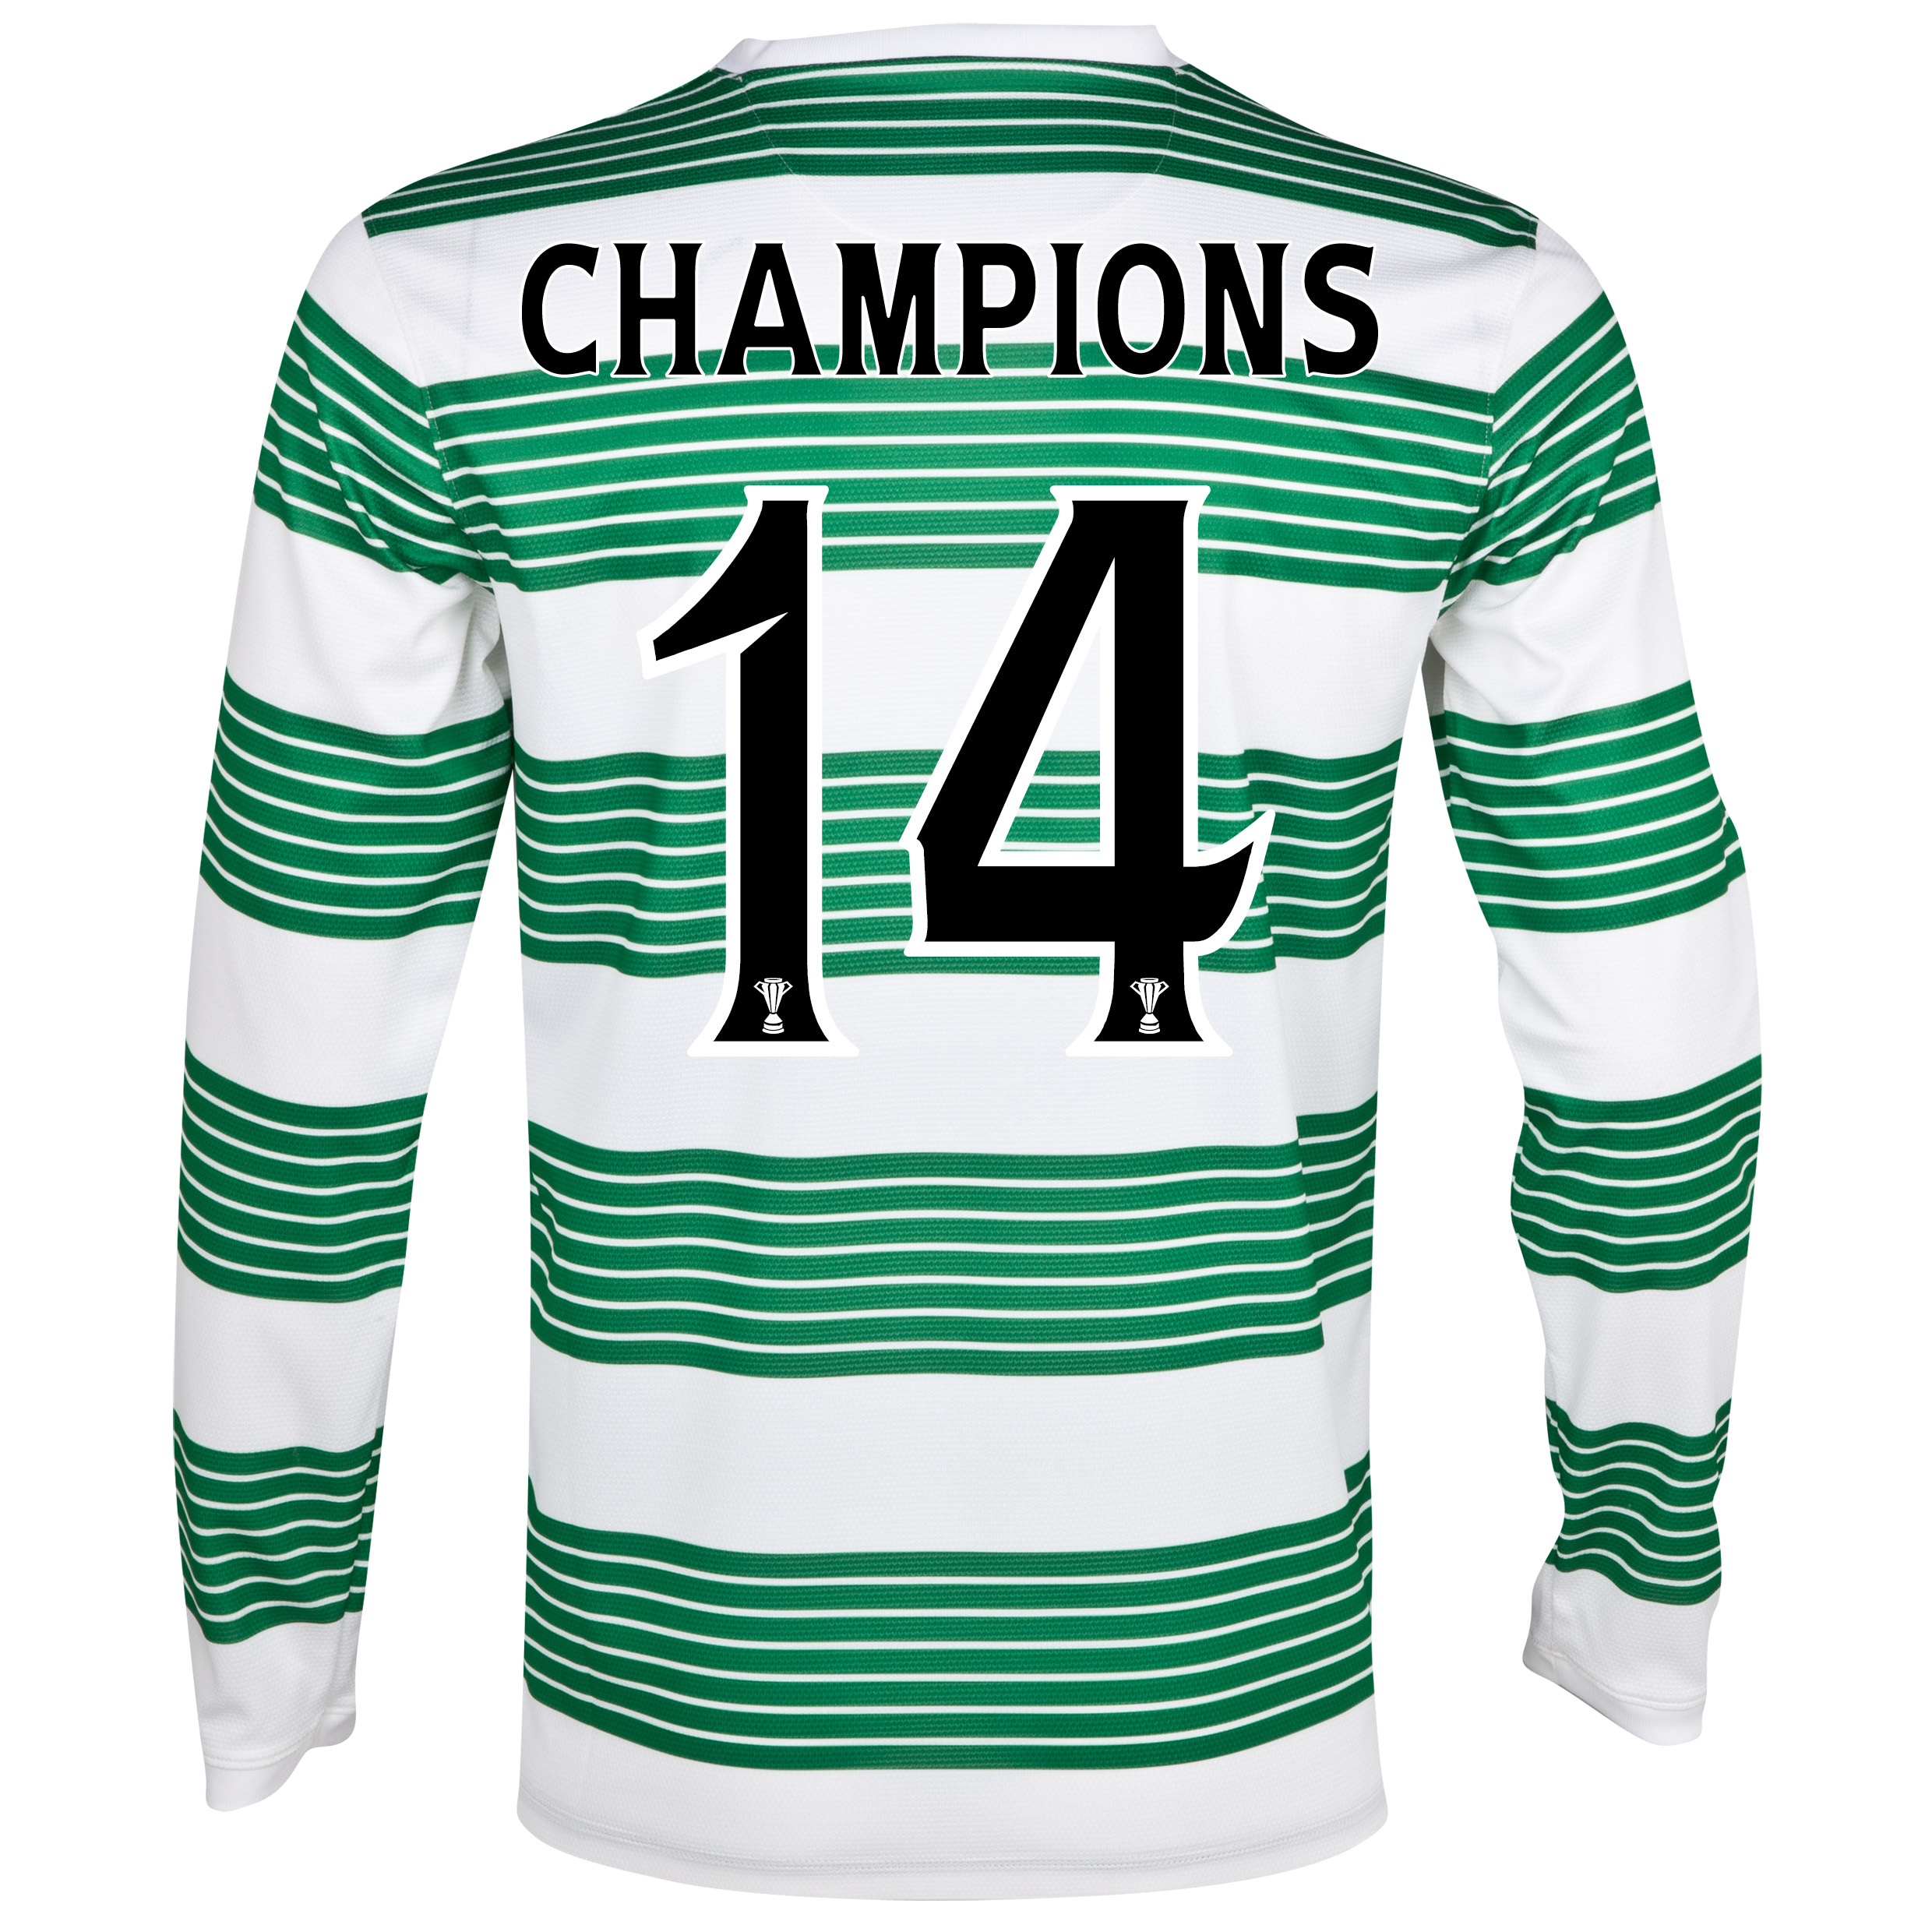 Celtic Home Shirt 2013/15 - L/S- Unsponsored with Champions 14 printing